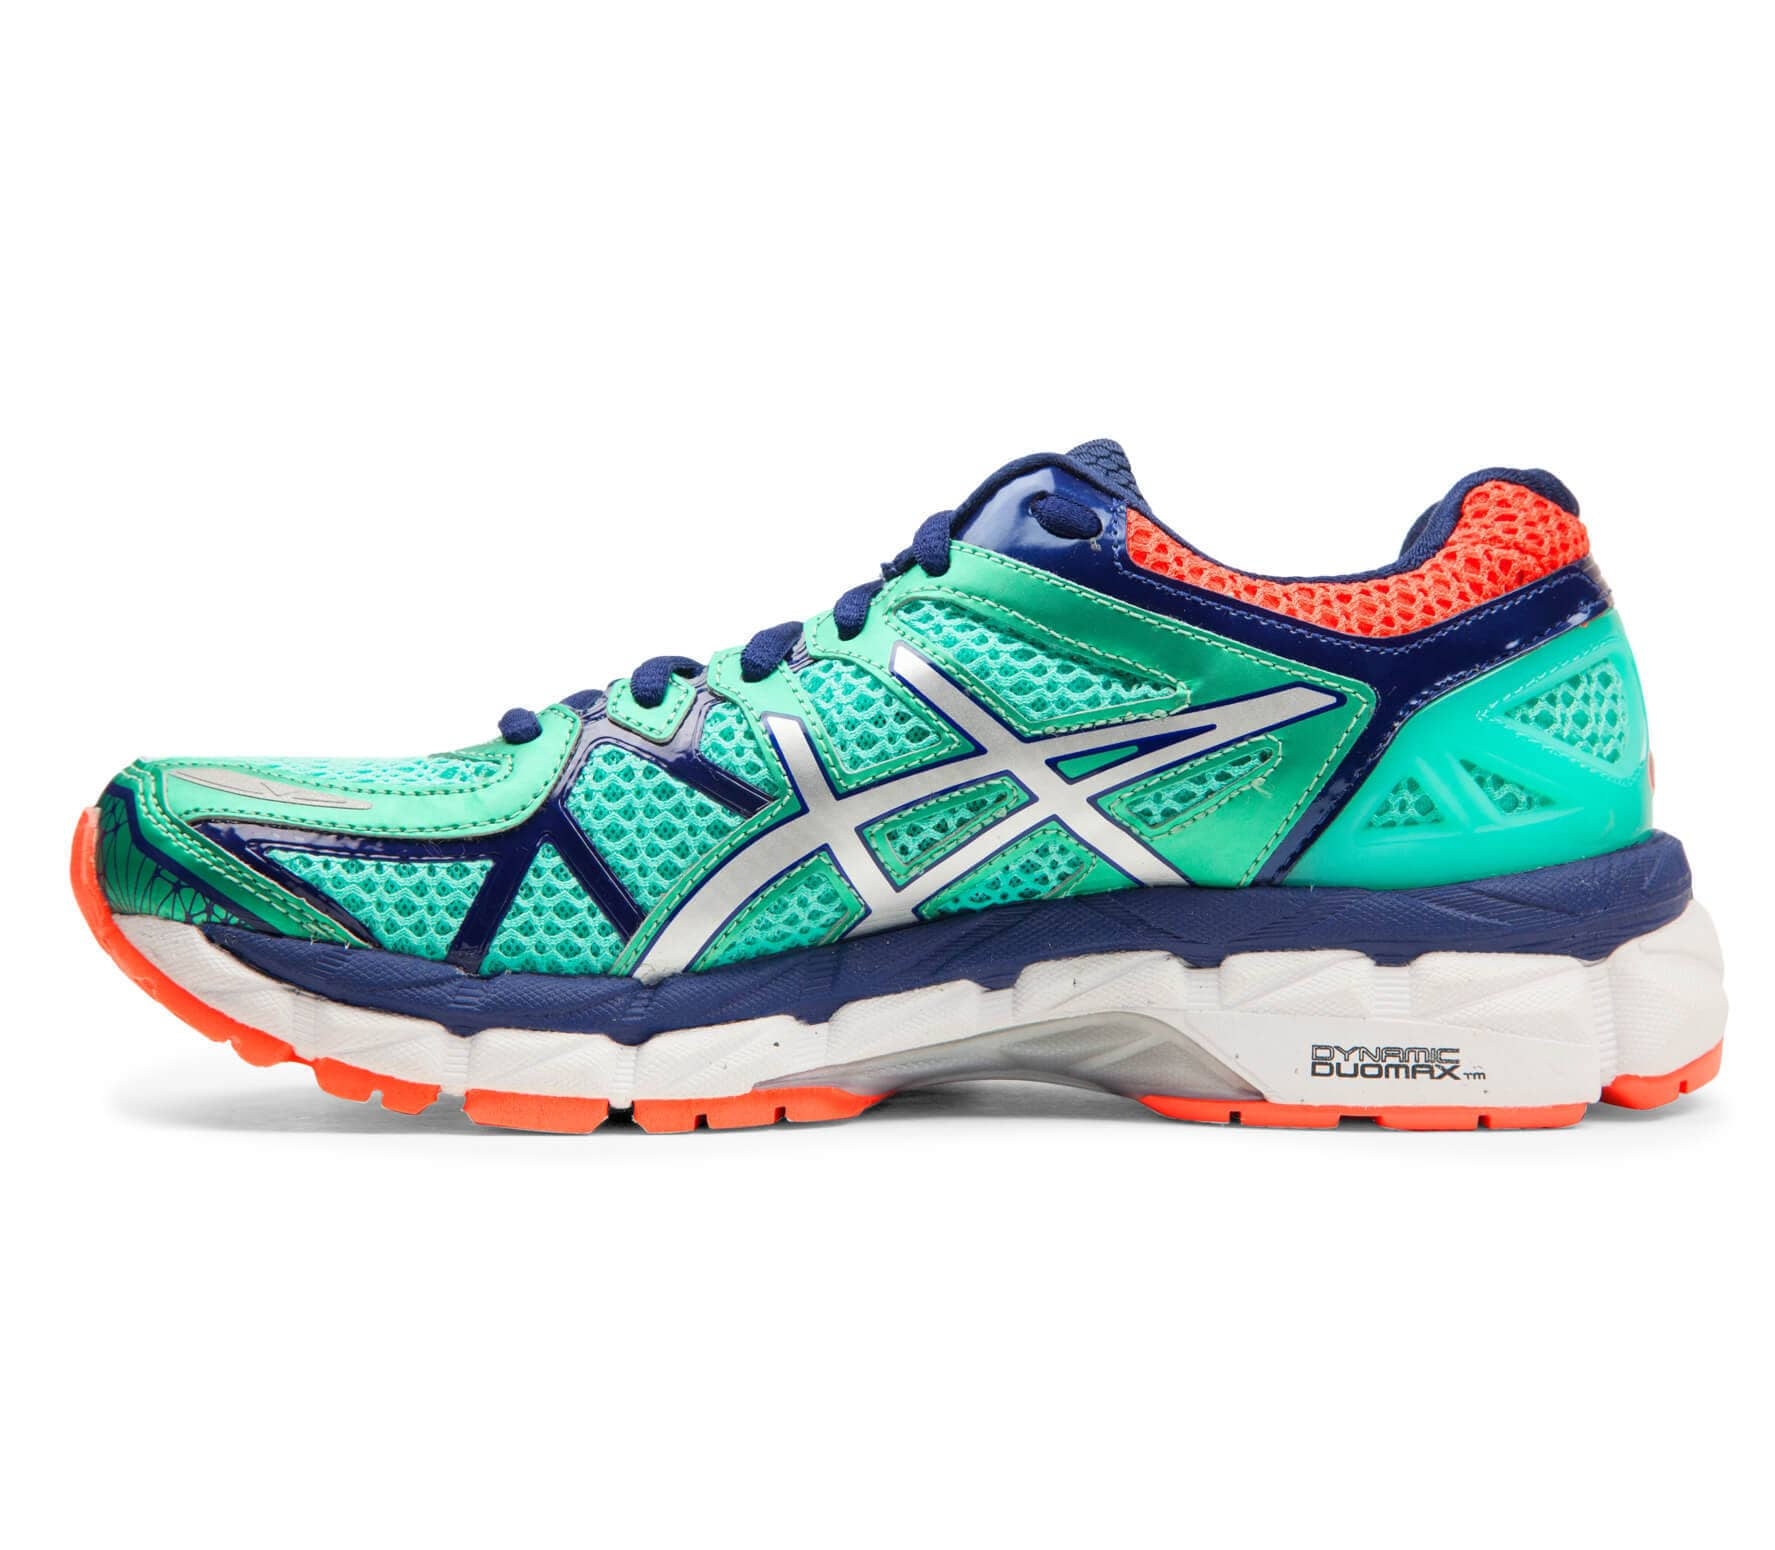 ASICS Gel Kayano 21 women's running shoe Damen